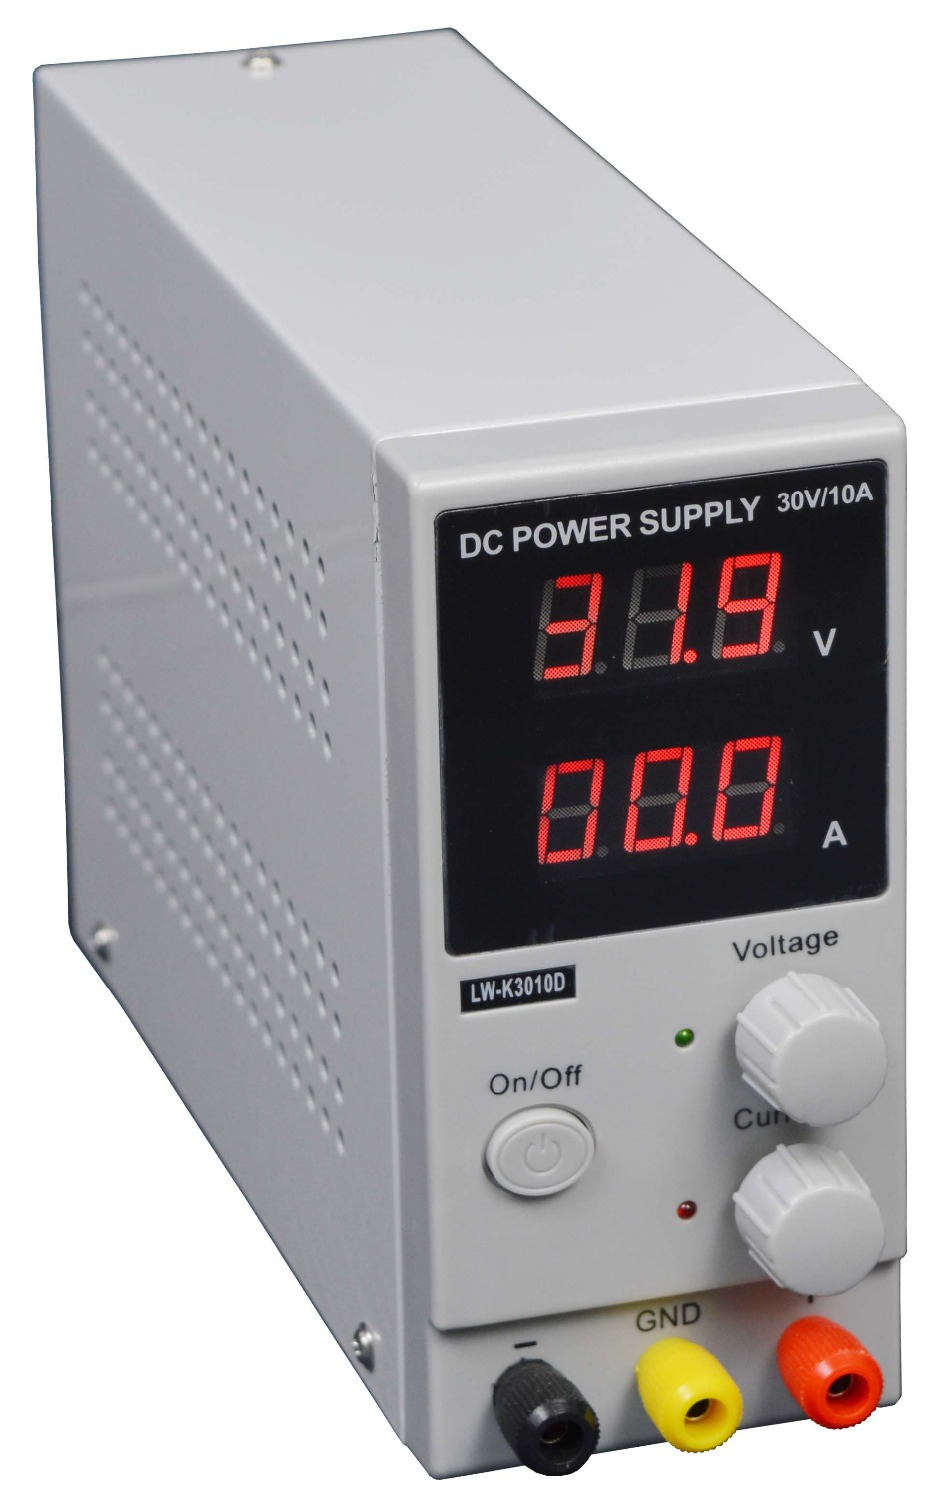 4PCS LW-3010D 110V 220V Mini Adjustable Digital DC power supply,0~30V 0~10A ,Switching Power supply, certification,US/EU/AU Plug cps 3010ii 0 30v 0 10a low power digital adjustable dc power supply cps3010 switching power supply